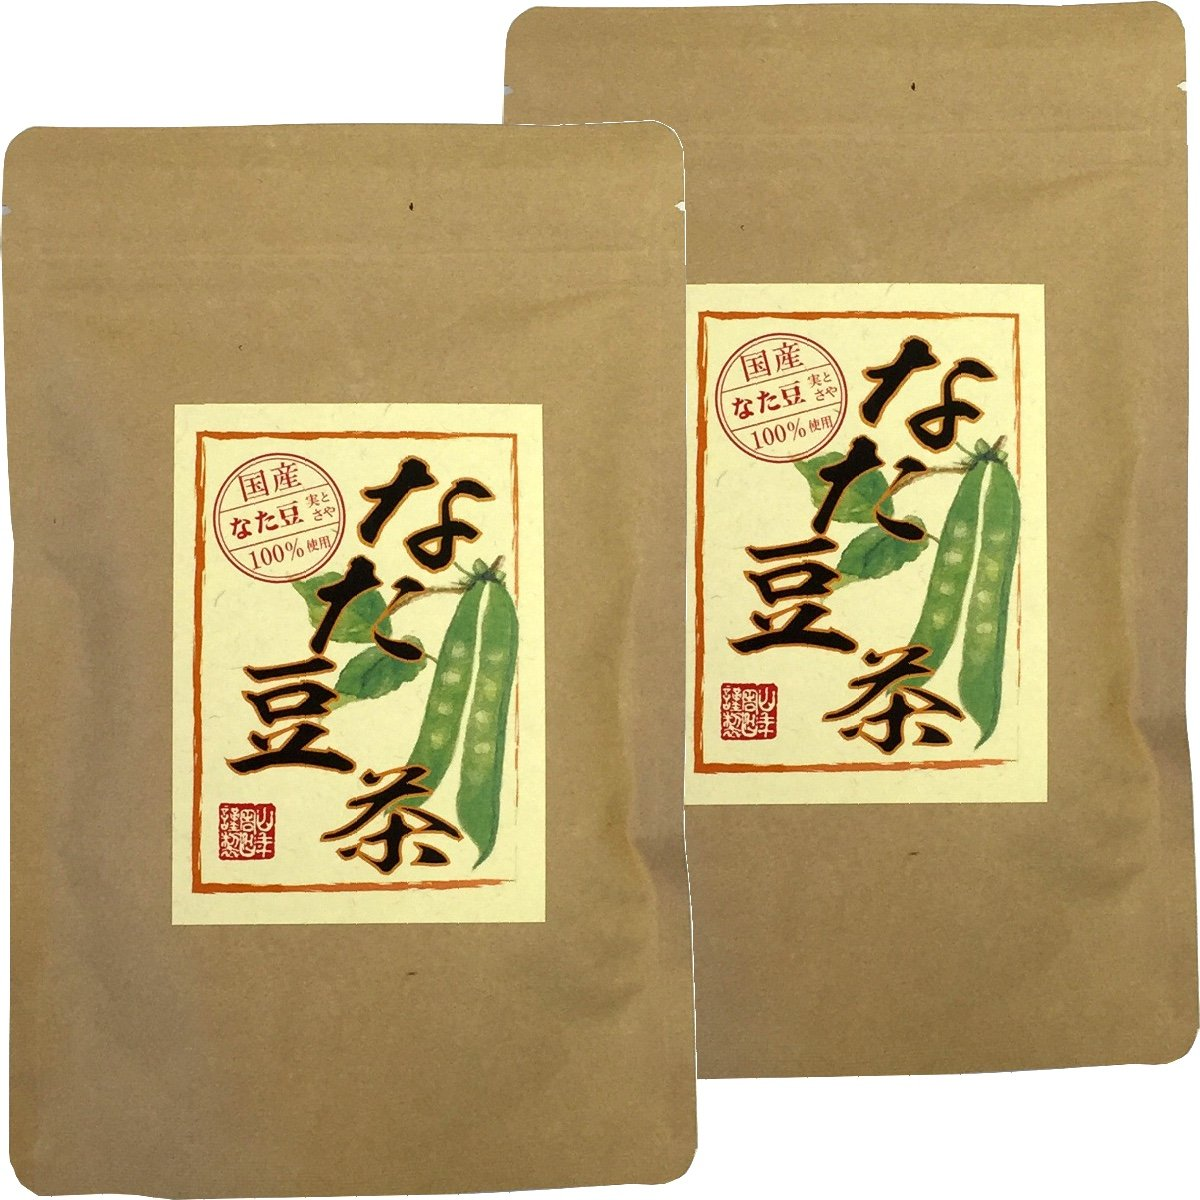 Japanese Tea Shop Yamaneen Sword Beans-Tea Without Agricultural Chemicals Non Caffeine Teabag 36G x 2packs by Japanese Tea Shop Yamaneen